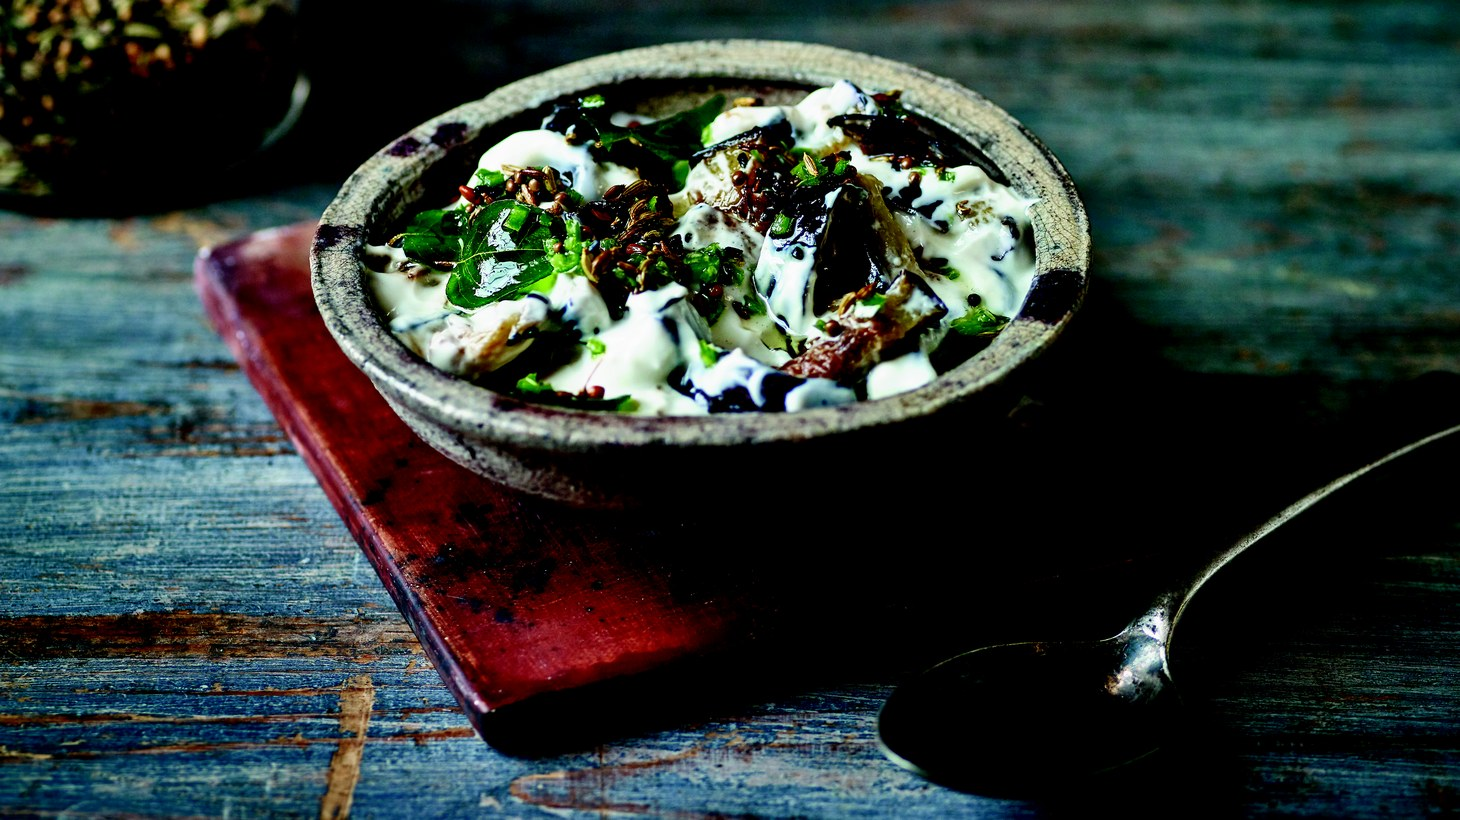 Baking rather than frying is Chetna Makan's preferred method of cooking eggplant to keep her raita dish healthy.